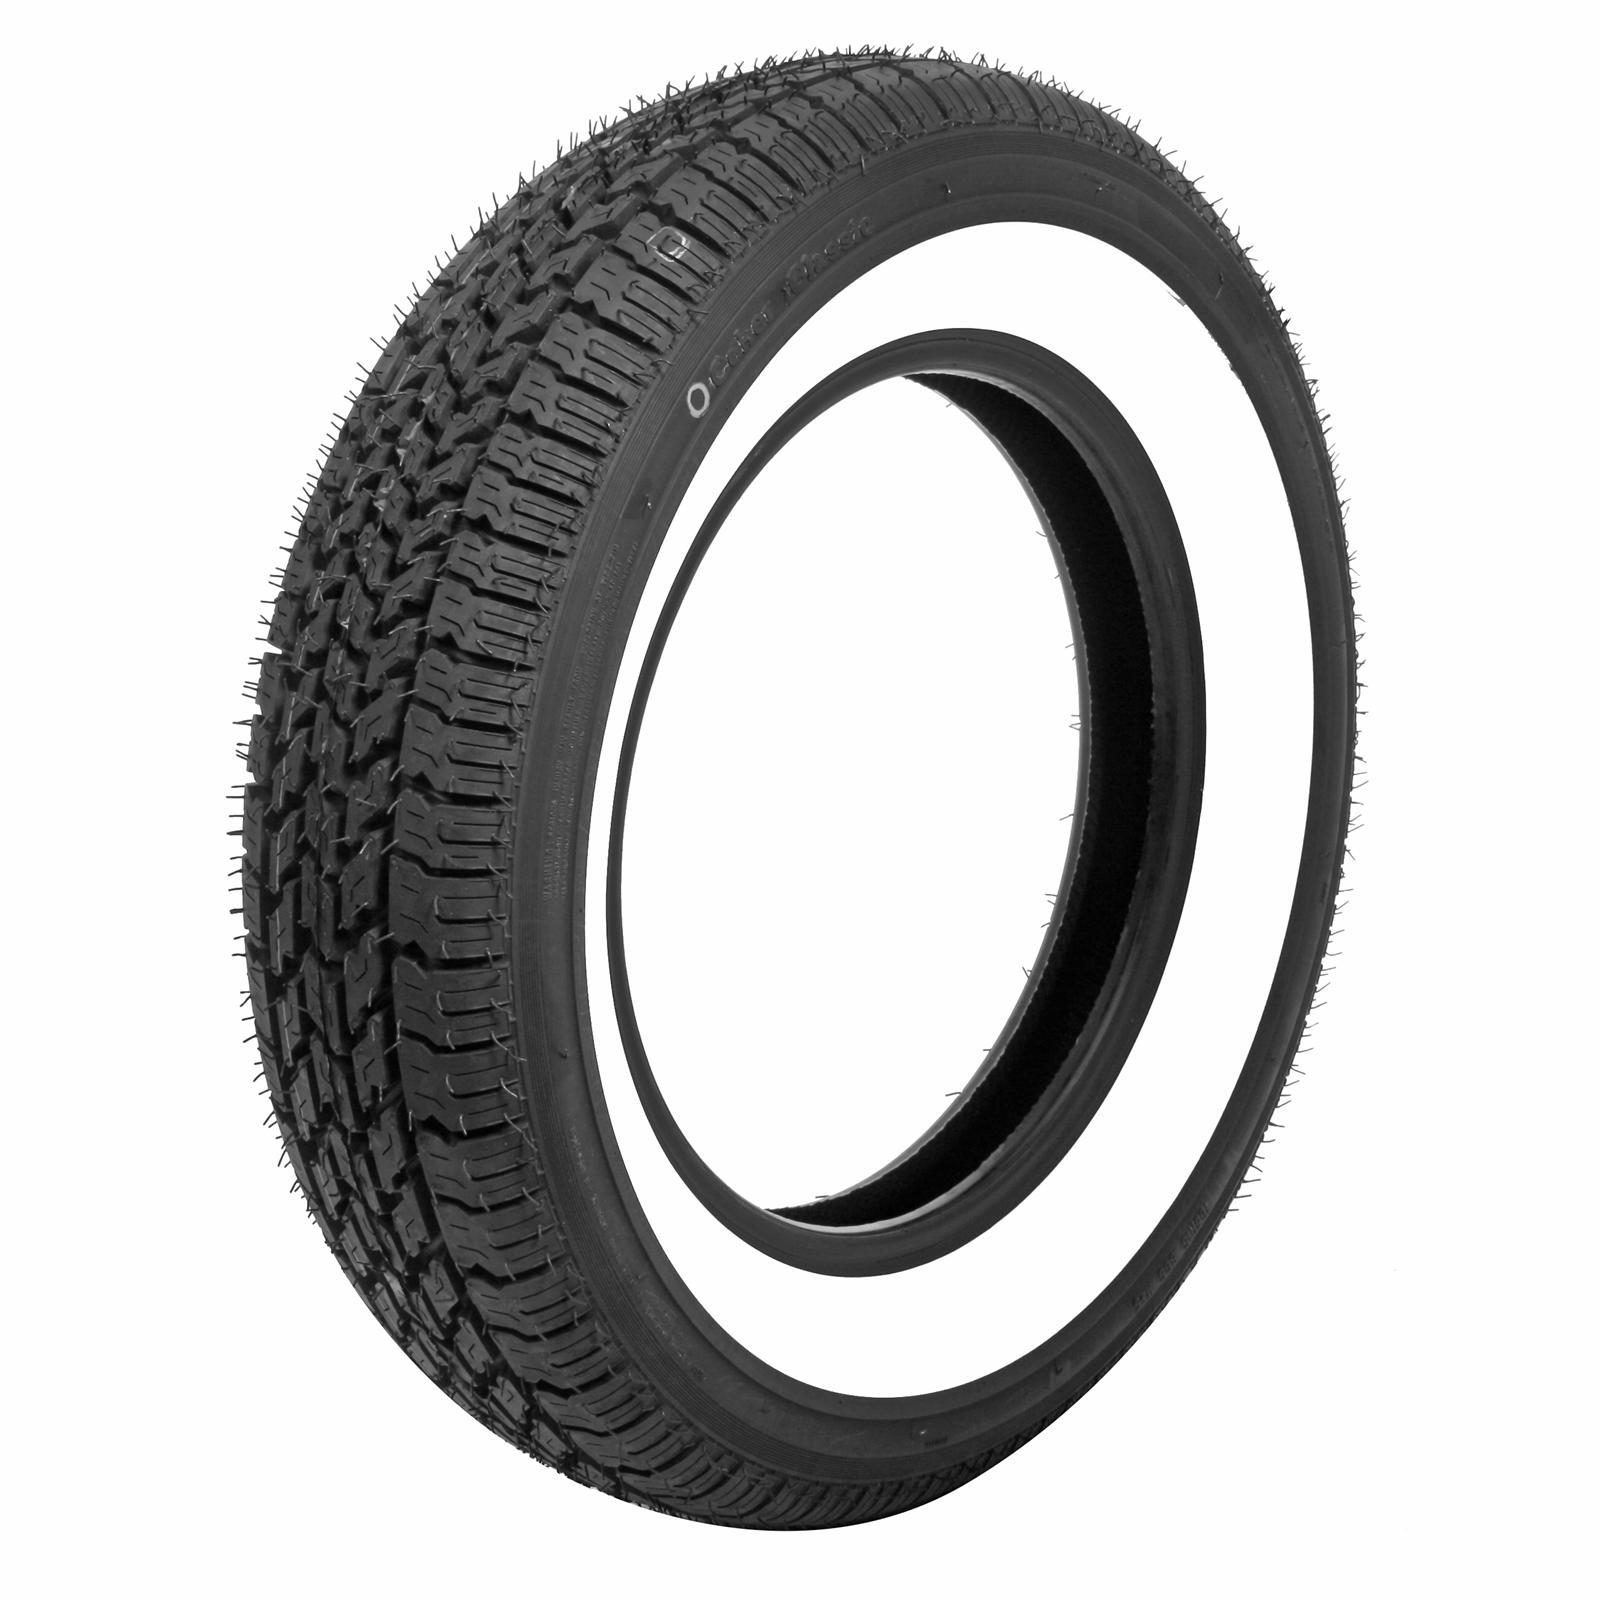 coker classic nostalgia radial tires free shipping on orders over 99 at summit racing